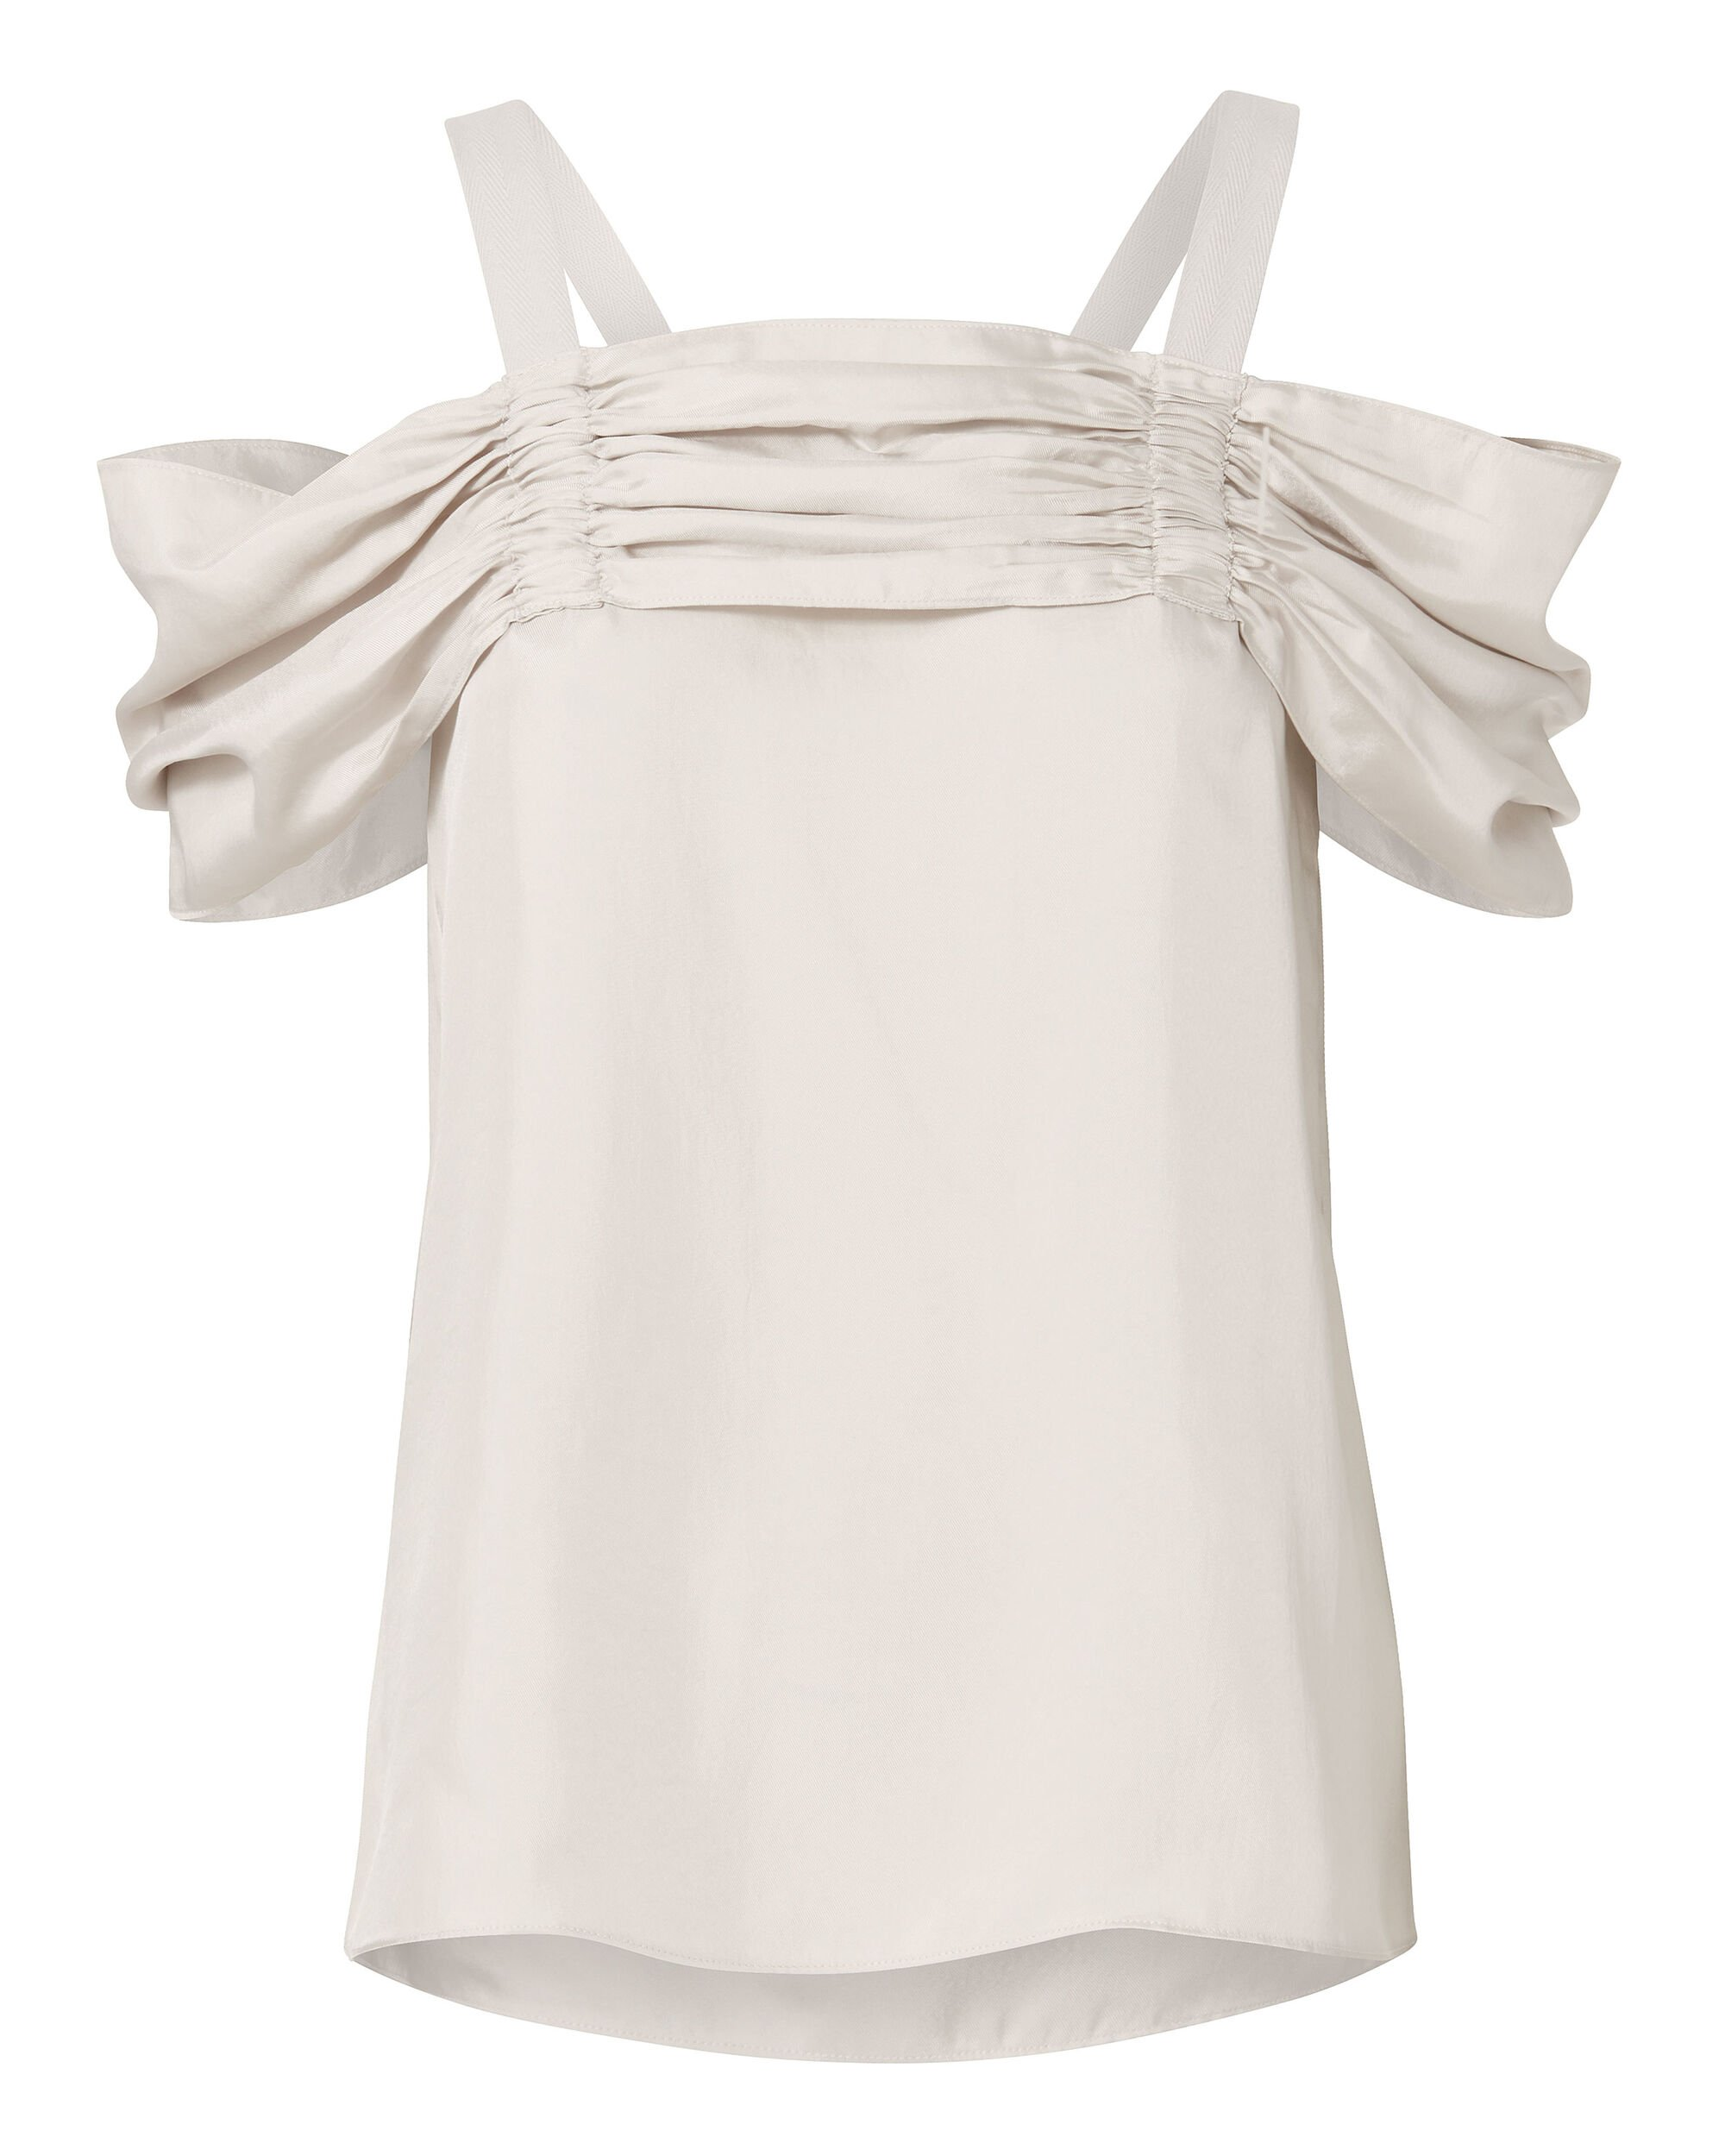 Mendini Satin Twill Cold-Shoulder Top, BEIGE, hi-res